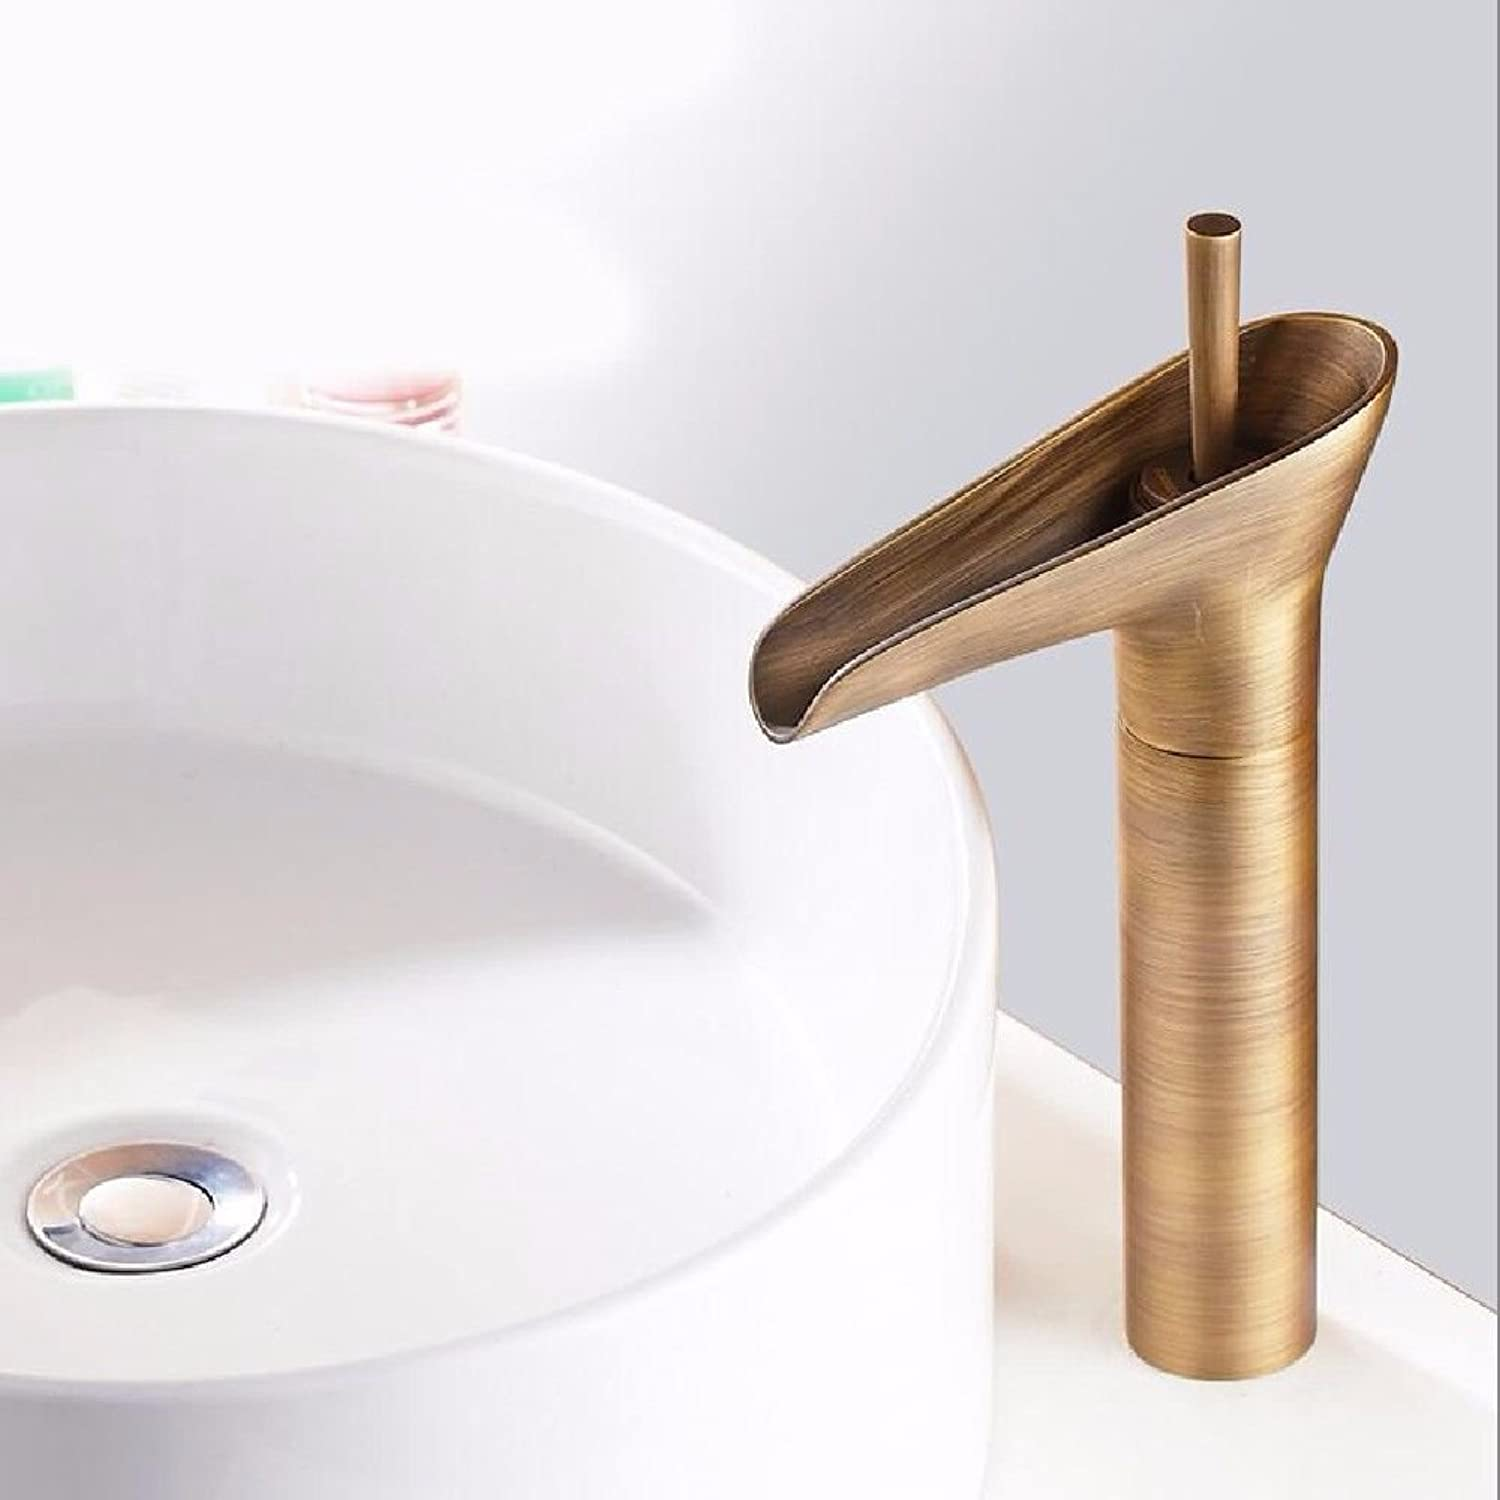 NewBorn Faucet Water Taps Hot And Cold Water The Copper Basin Antique Hot And Cold Wash-Basin Mixer